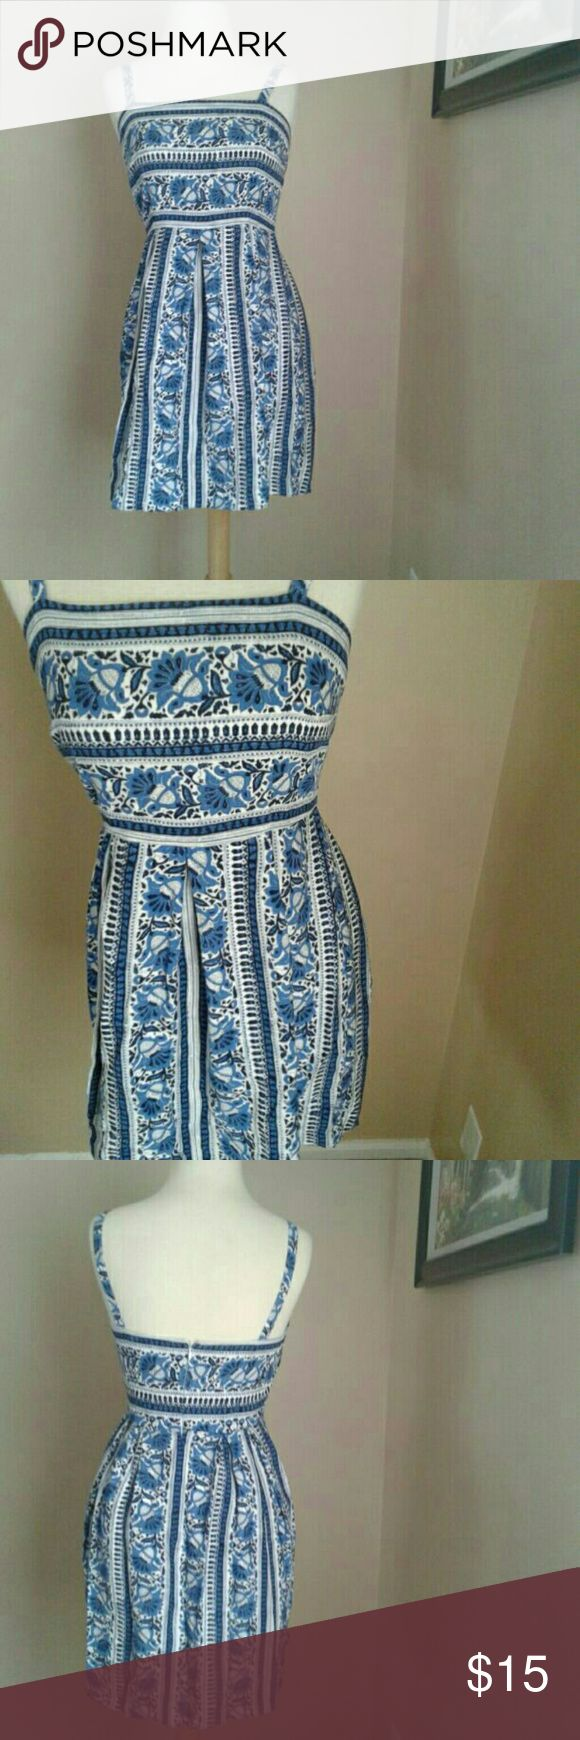 Blue Paisley Dress Women's Ann Taylor loft blue Paisley Dress. Zips up the back, such a cute dress and in good condition!   Sized as a 2p 2 petite LOFT Dresses